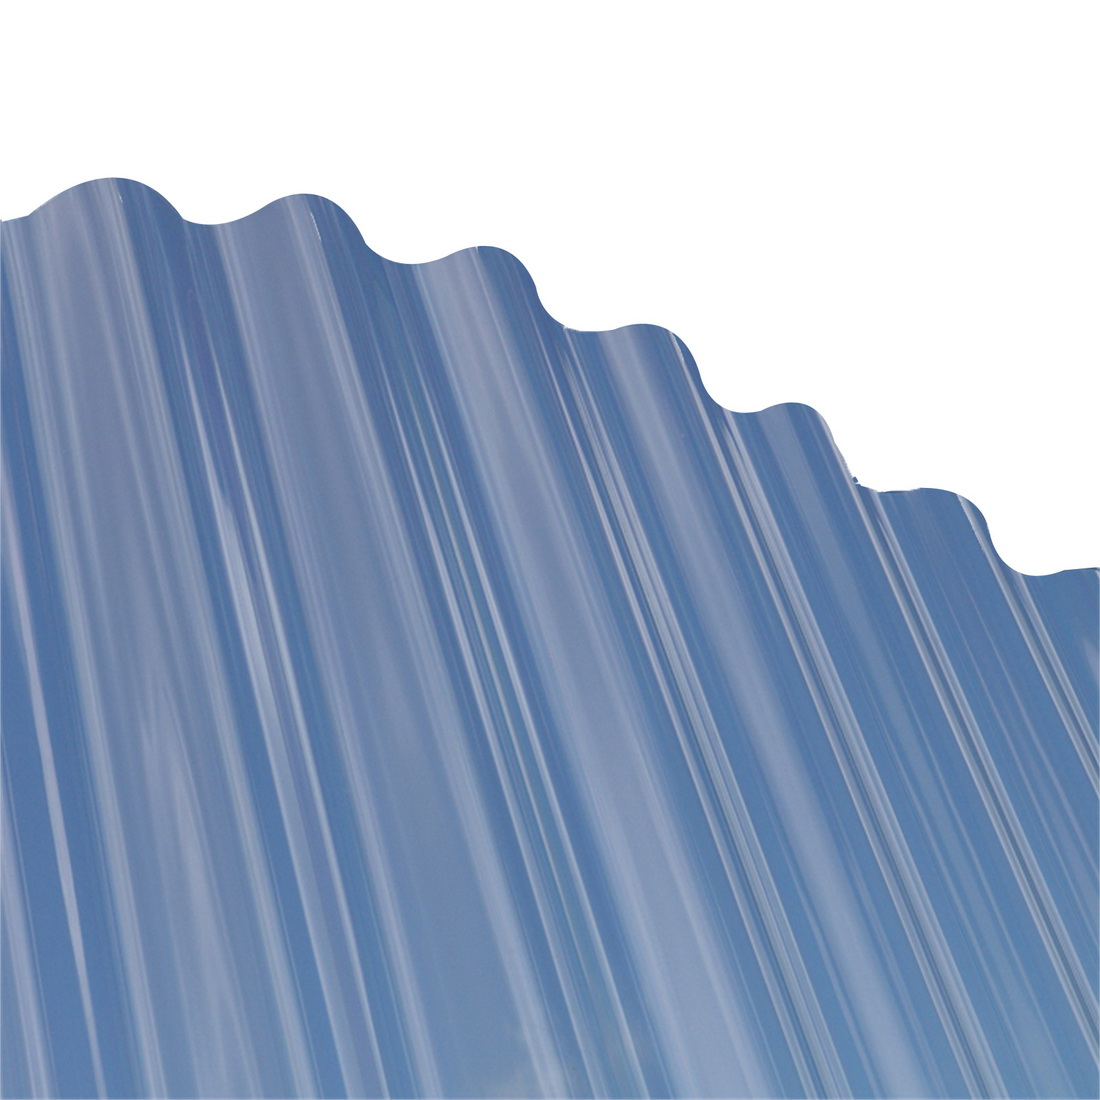 Tufclad Ultra Corrugated Roofing 3000 x 860 x 0.8mm Polycarbonate Clear TFU-CORR-CLR-3000